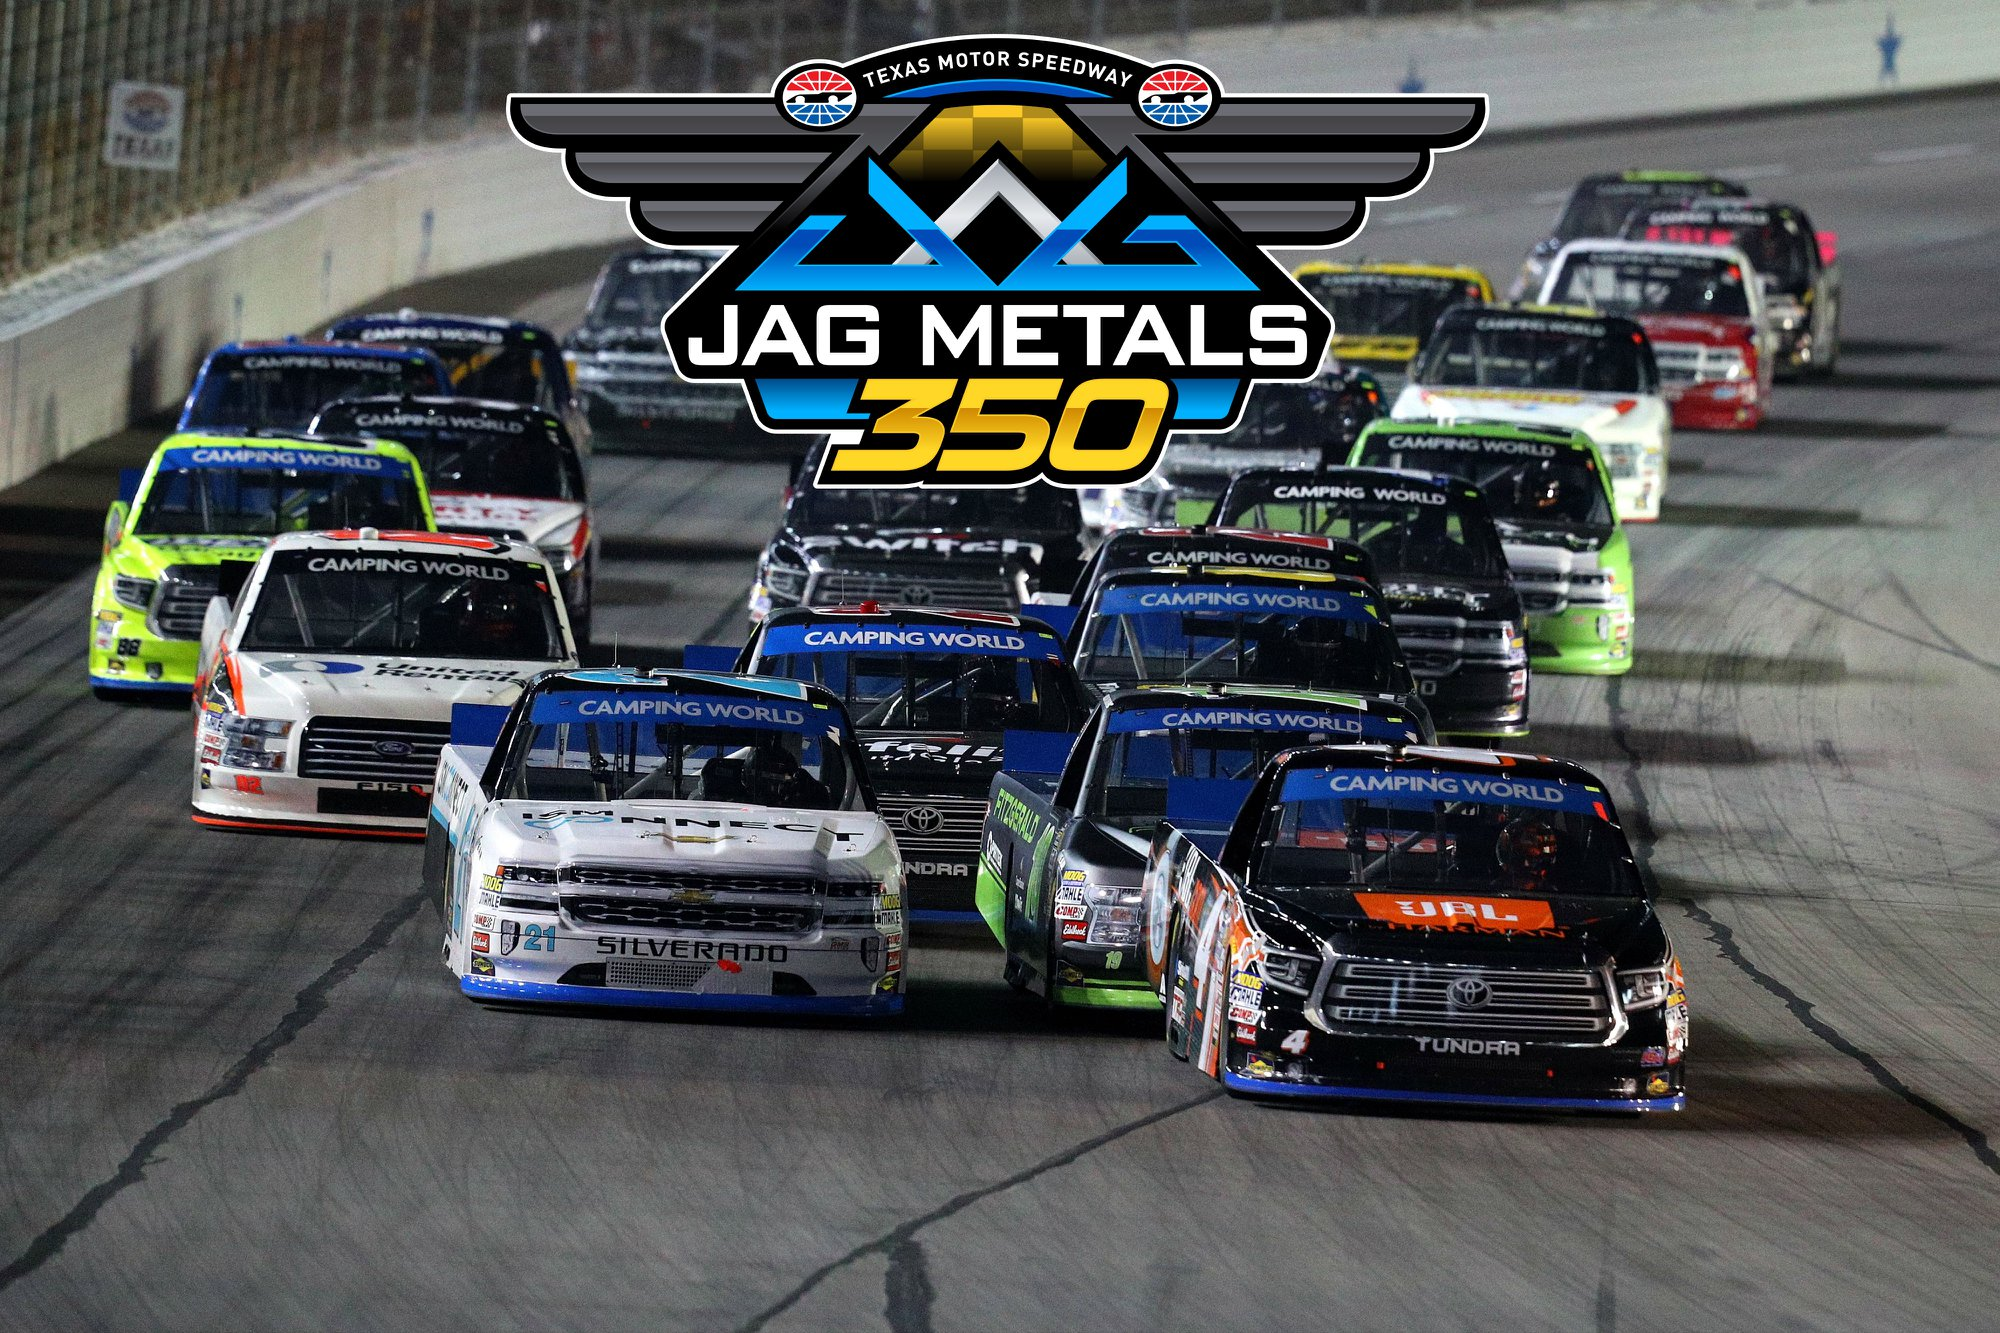 JAG METALS SIGNS MULTI-YEAR RENEWAL AS ENTITLEMENT SPONSOR OF ANNUAL FALL NASCAR TRUCK SERIES PLAYOFF RACE